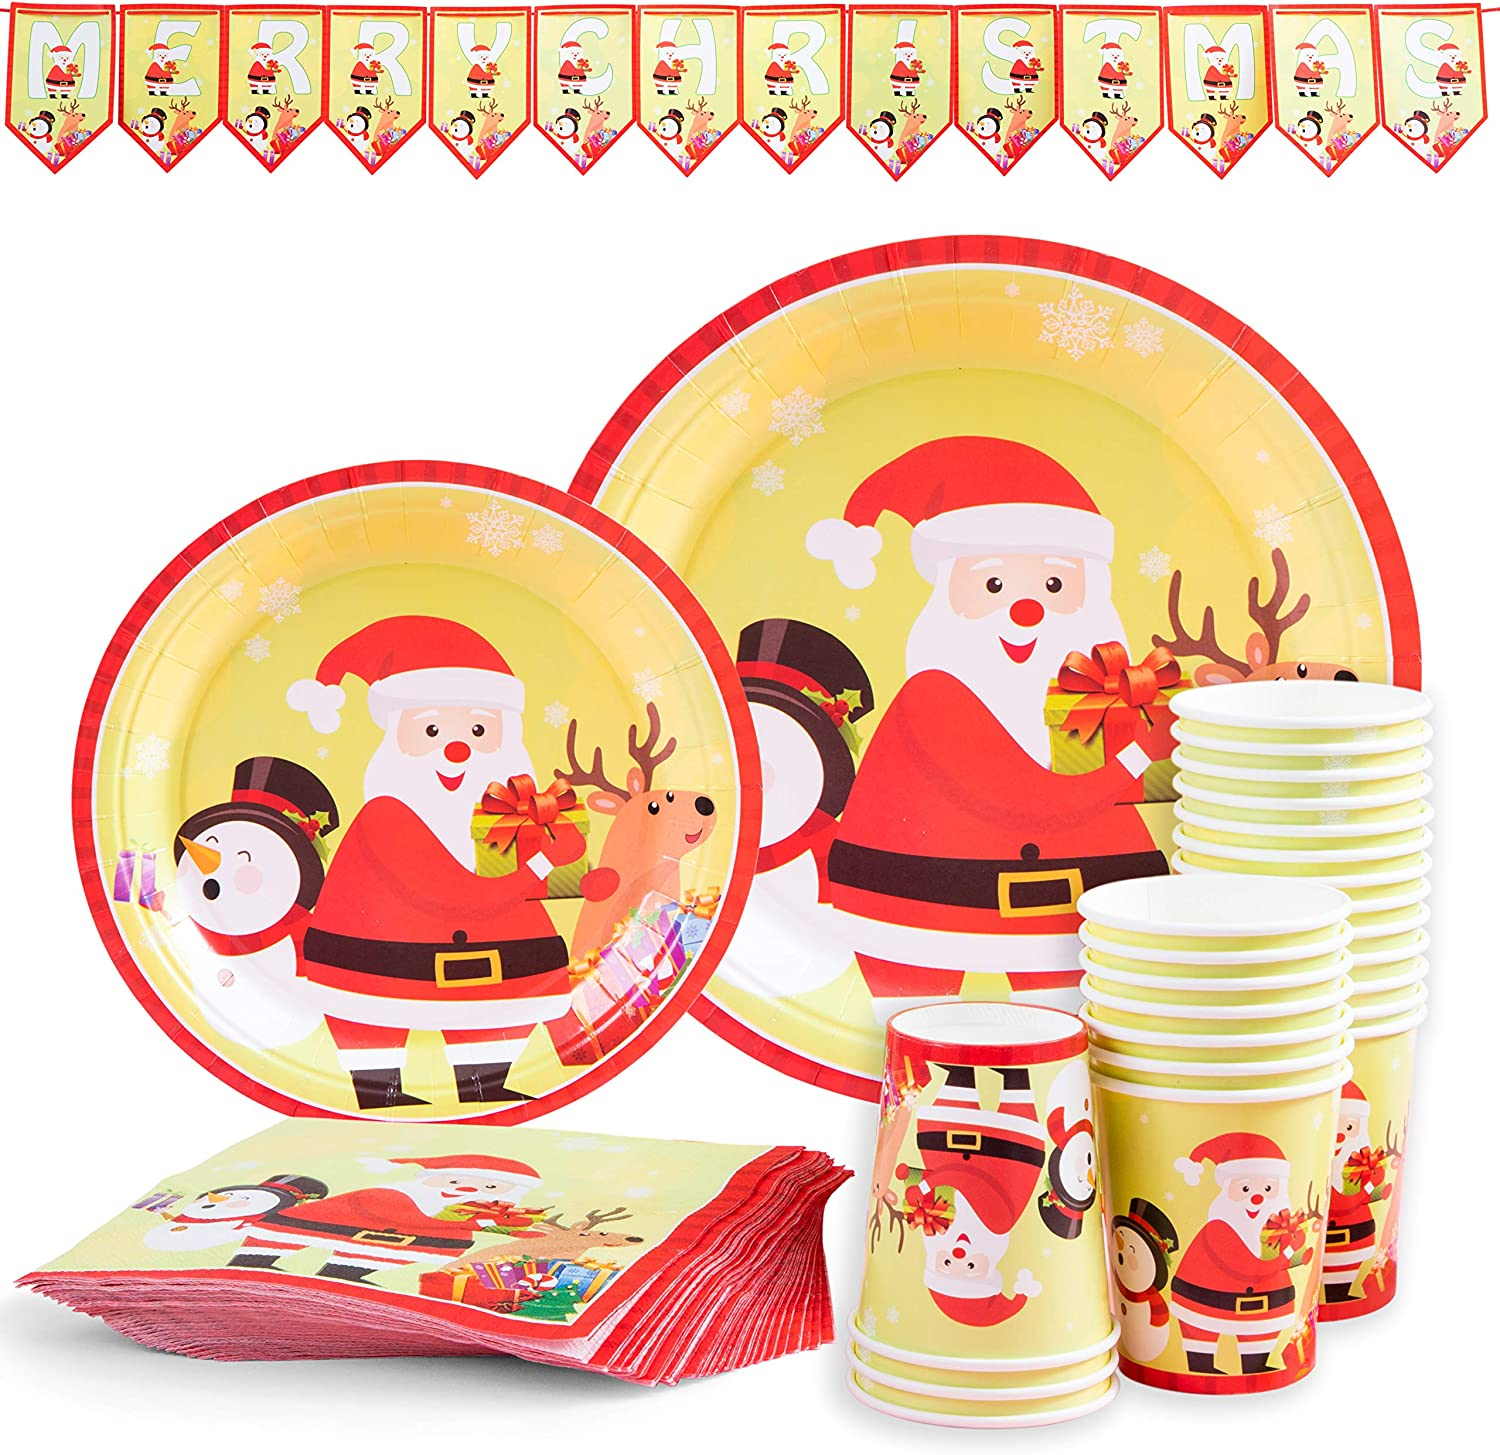 Serves 24 Banner Paper Cups PartyFun Christmas Paper Plates Disposable Dinnerware Set Christmas Party Supplies Set Christmas Party Decoration Includes Paper Plates Napkins Style 2